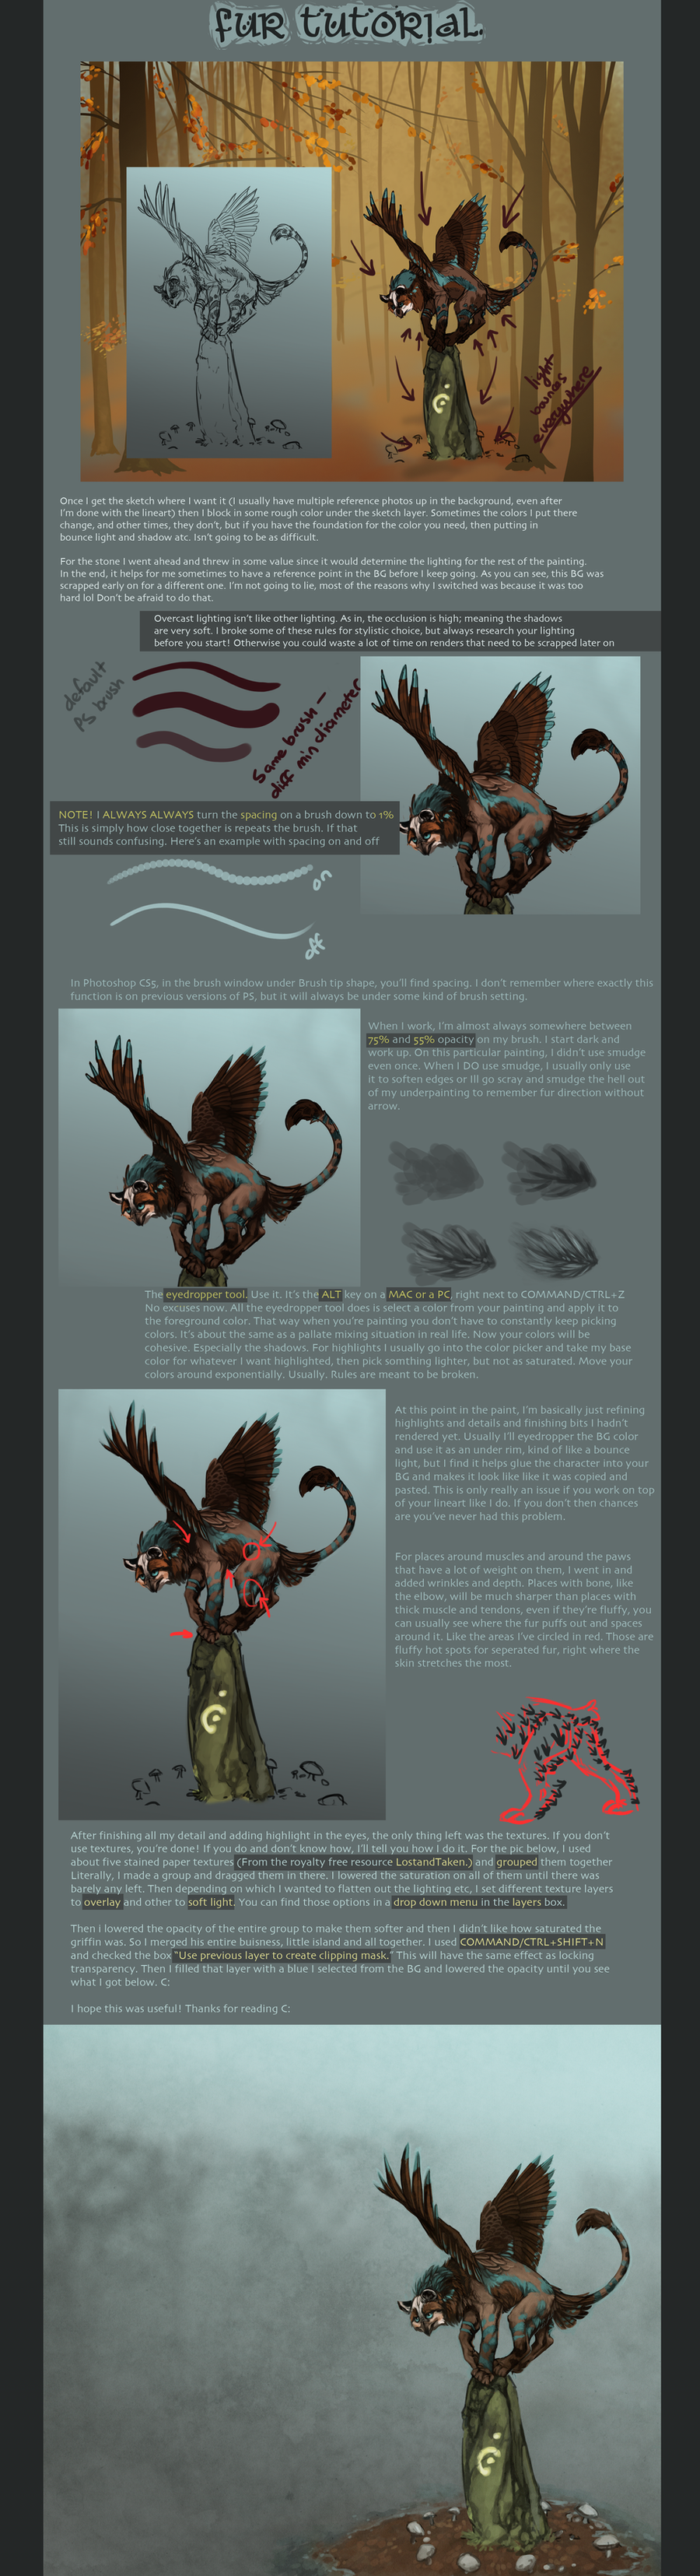 Fur Painting Resource by Blackpassion777